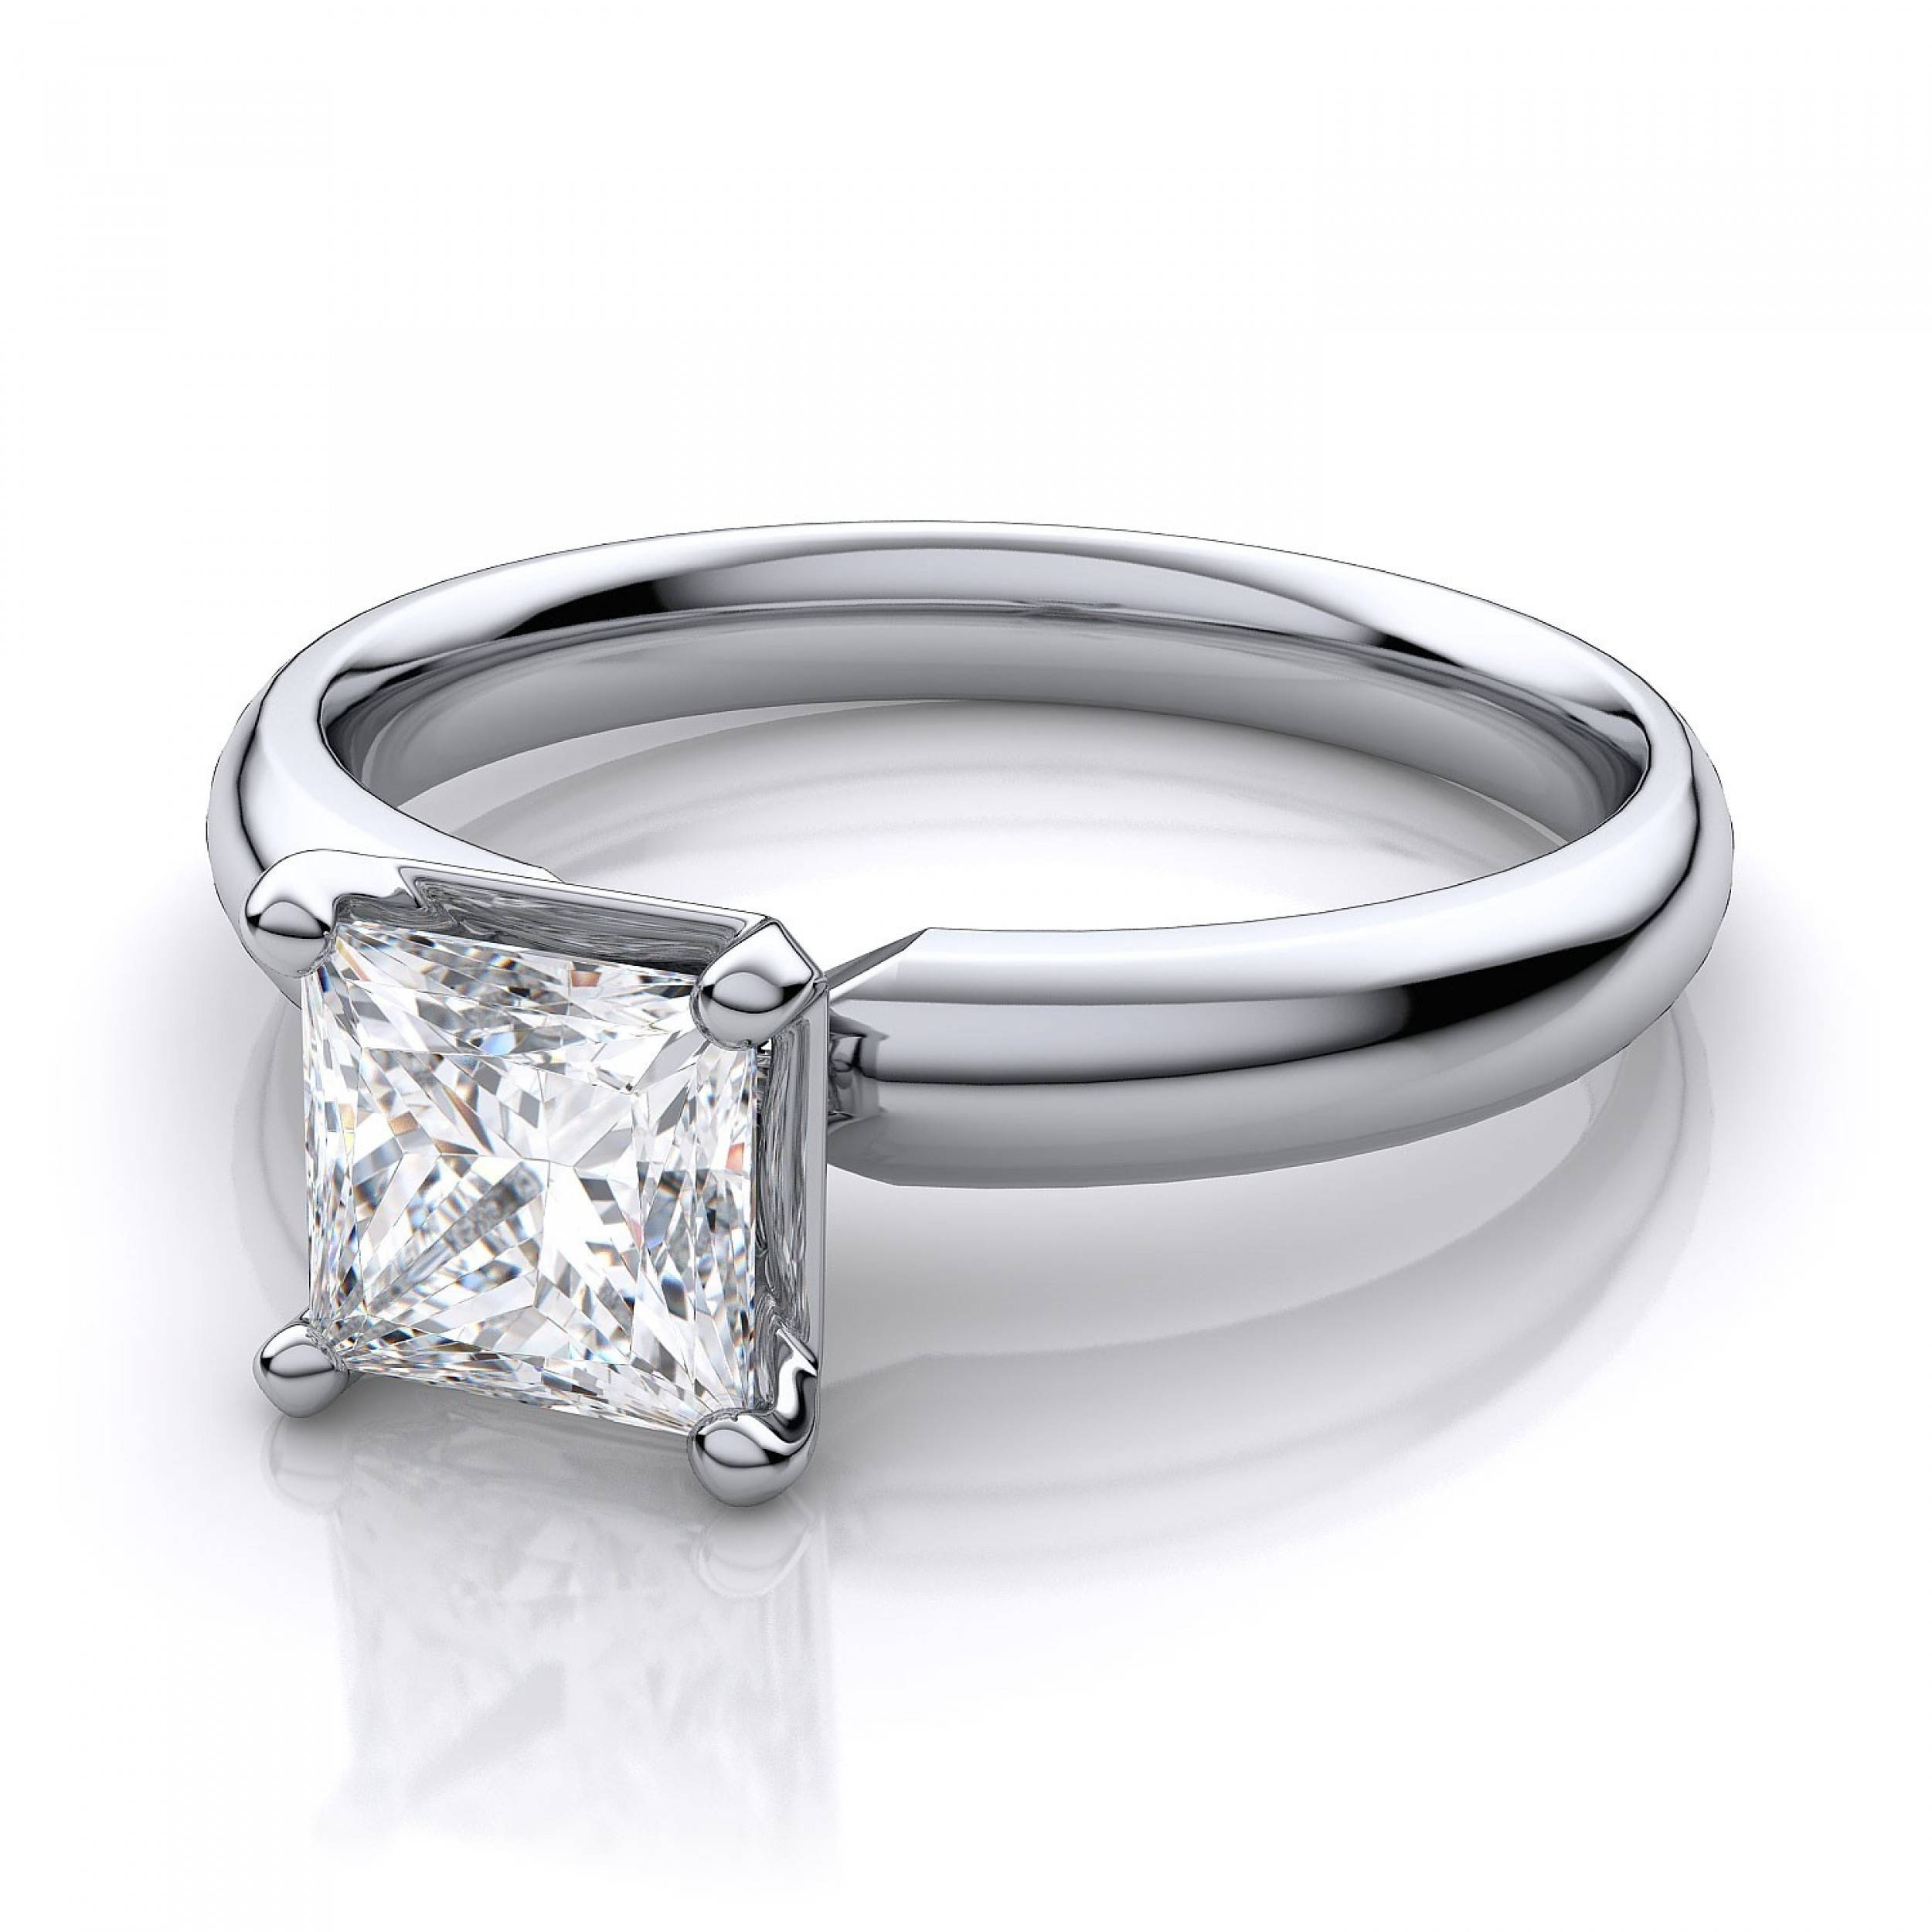 Carat Kanai Princess Cut Diamond Solitaire Engagement Ring In 14K Intended For Princess Cut Diamond Engagement Rings (Gallery 12 of 15)